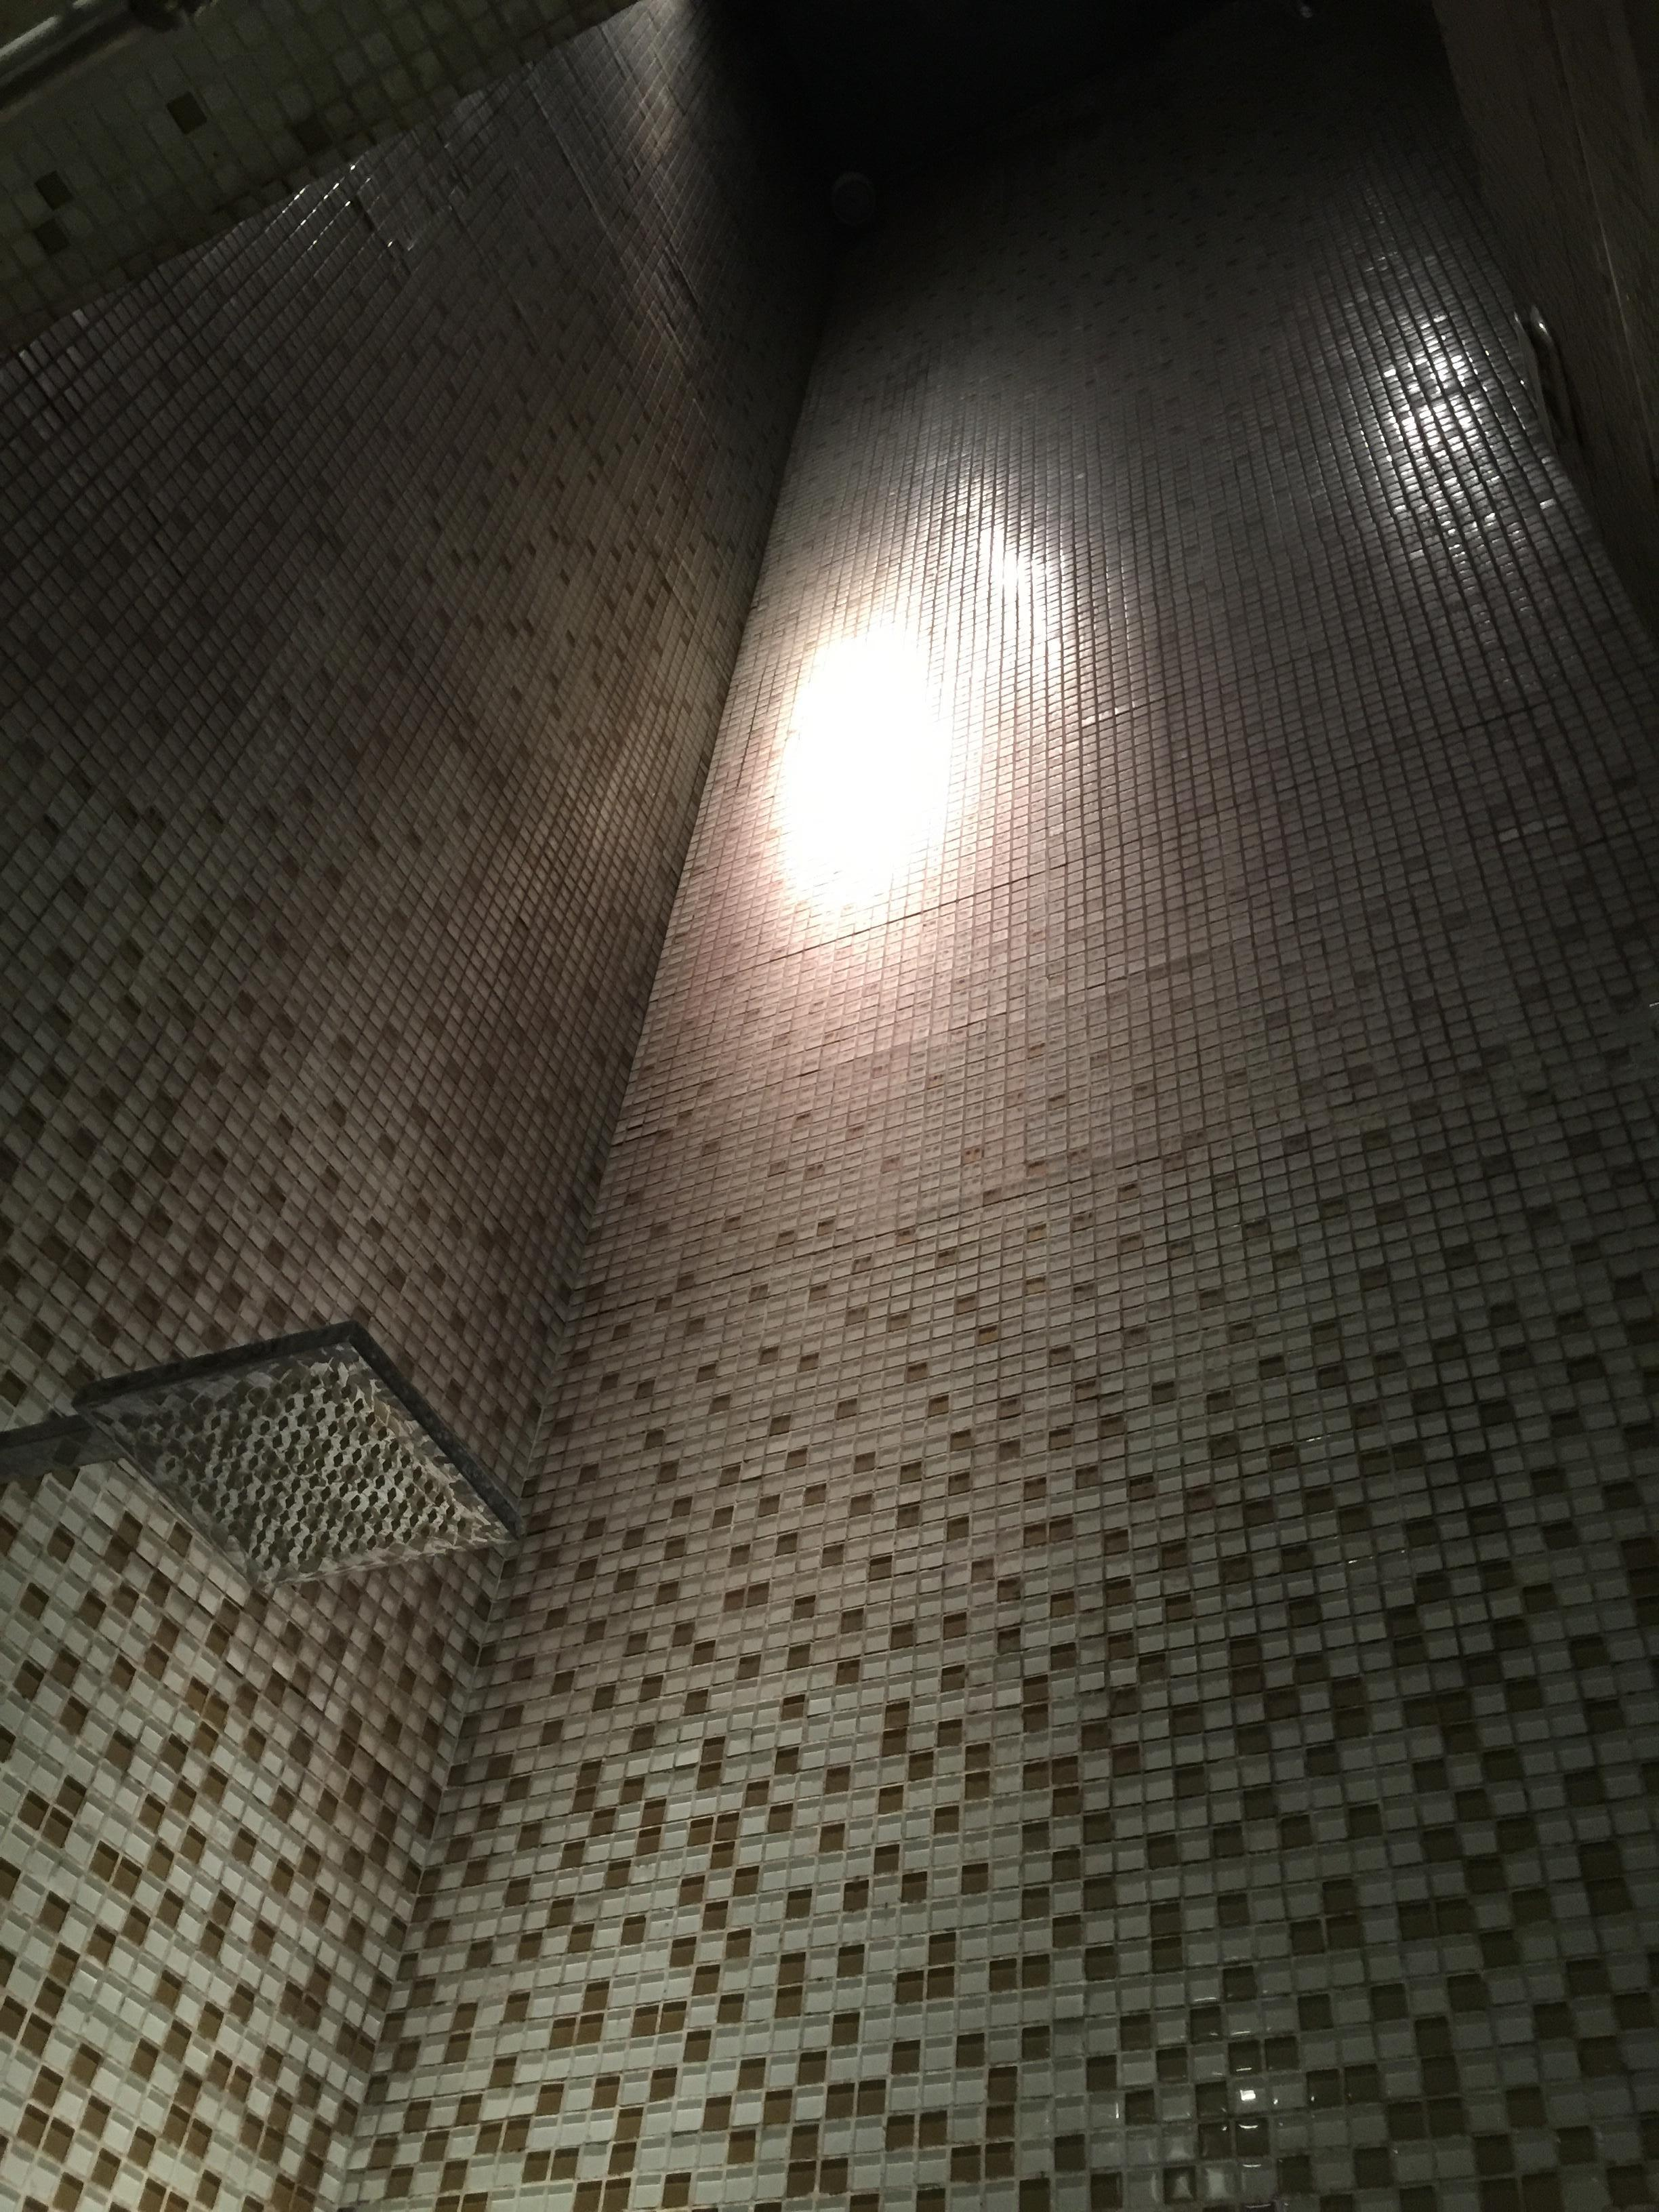 Looking up at the shower